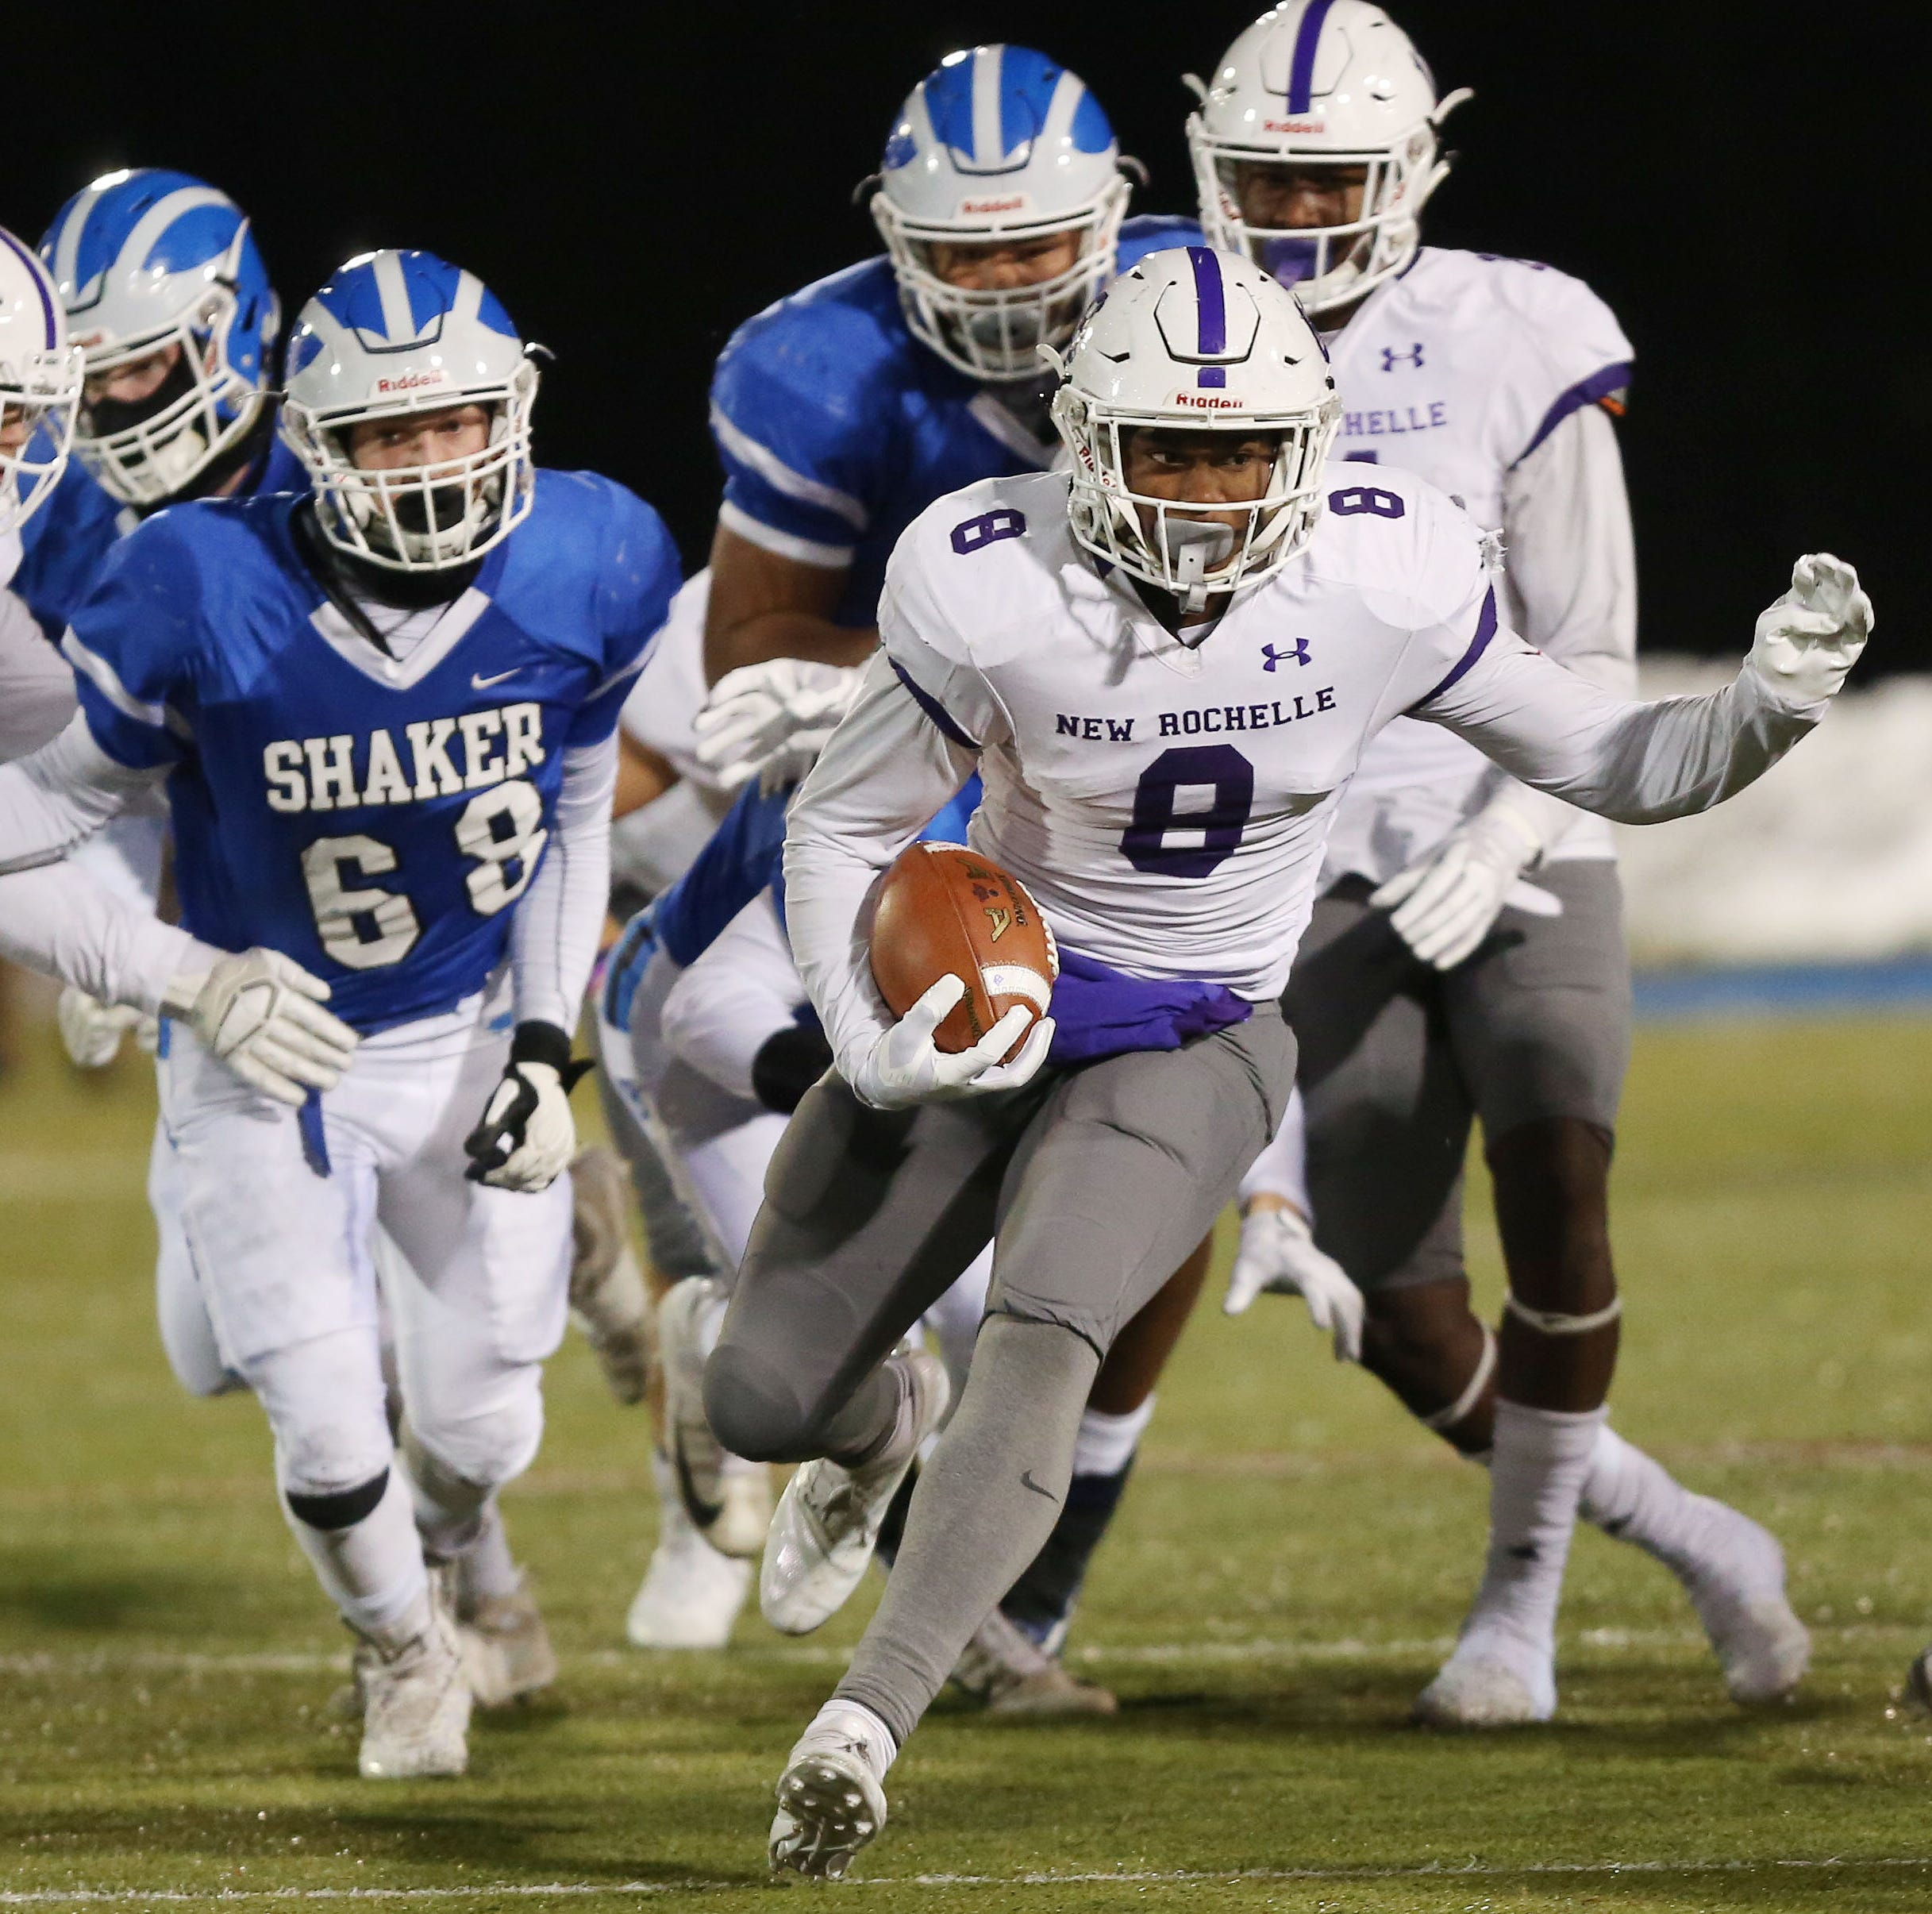 New Rochelle's Jordan Forrest (8) runs from the...